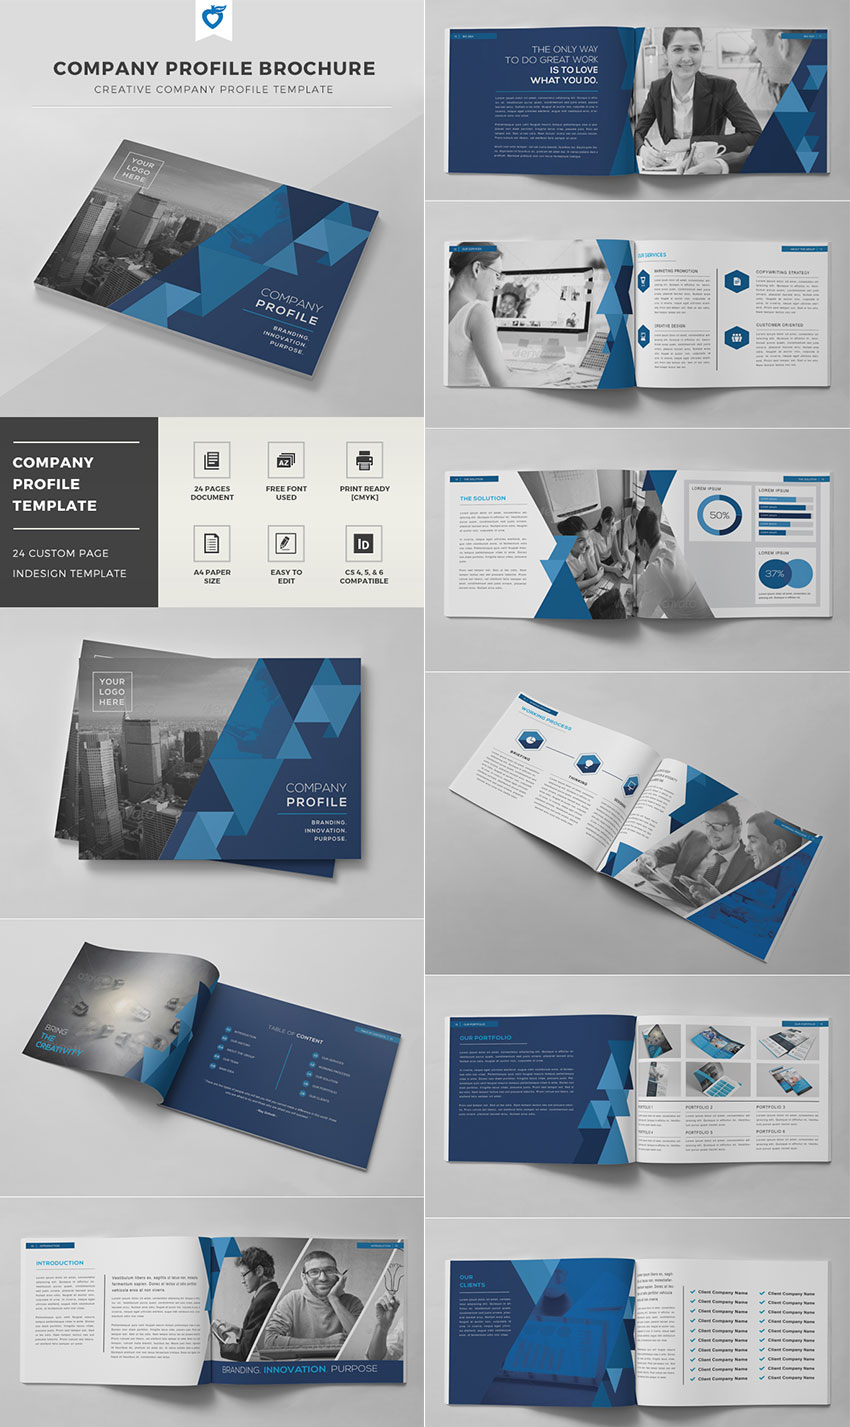 best indesign brochure templates for creative business marketing company profile brochure indd template